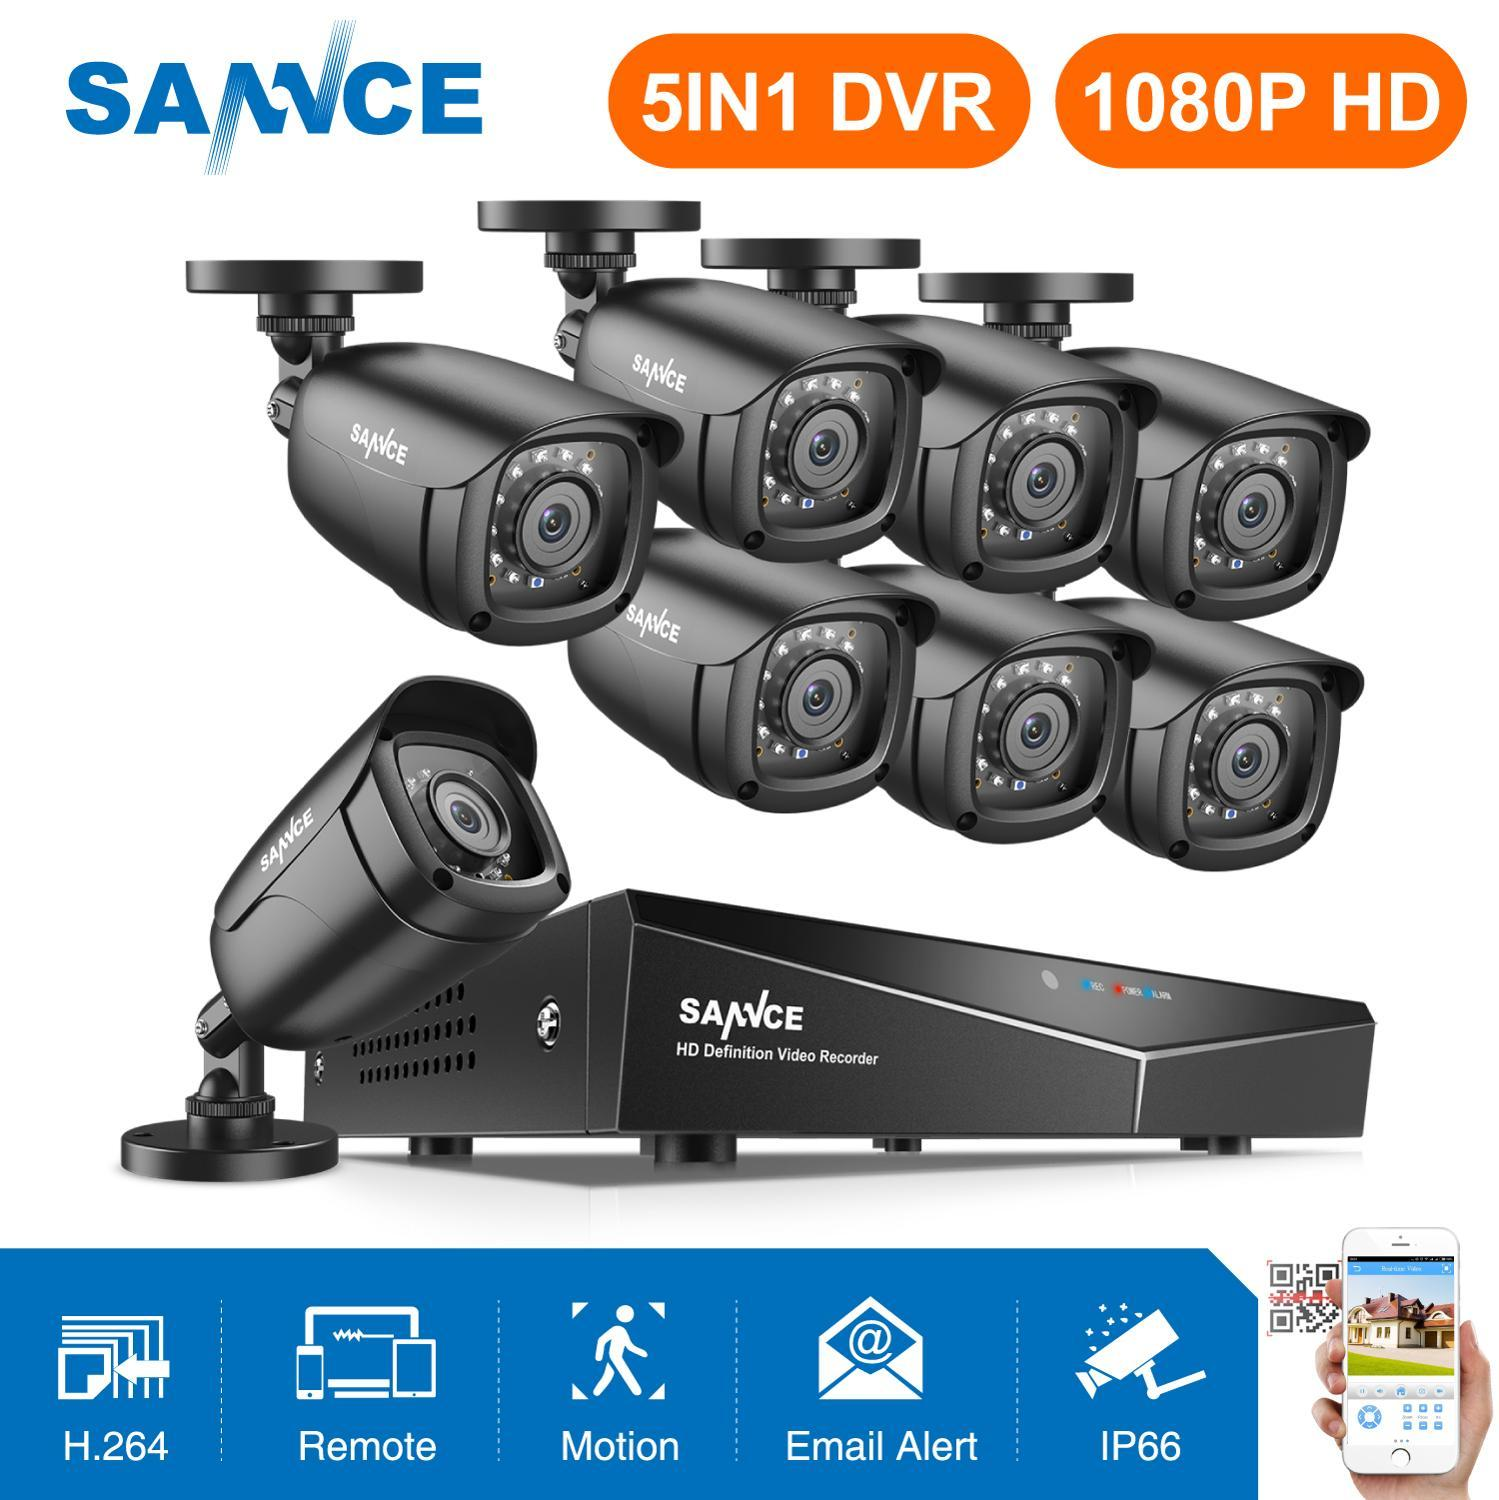 SANNCE 8CH 1080P Security CCTV System With 1080N 5IN1 DVR 4PCS 8PCS 1080P IR Outdoor Weatherproof Camera Video Surveillance Kit